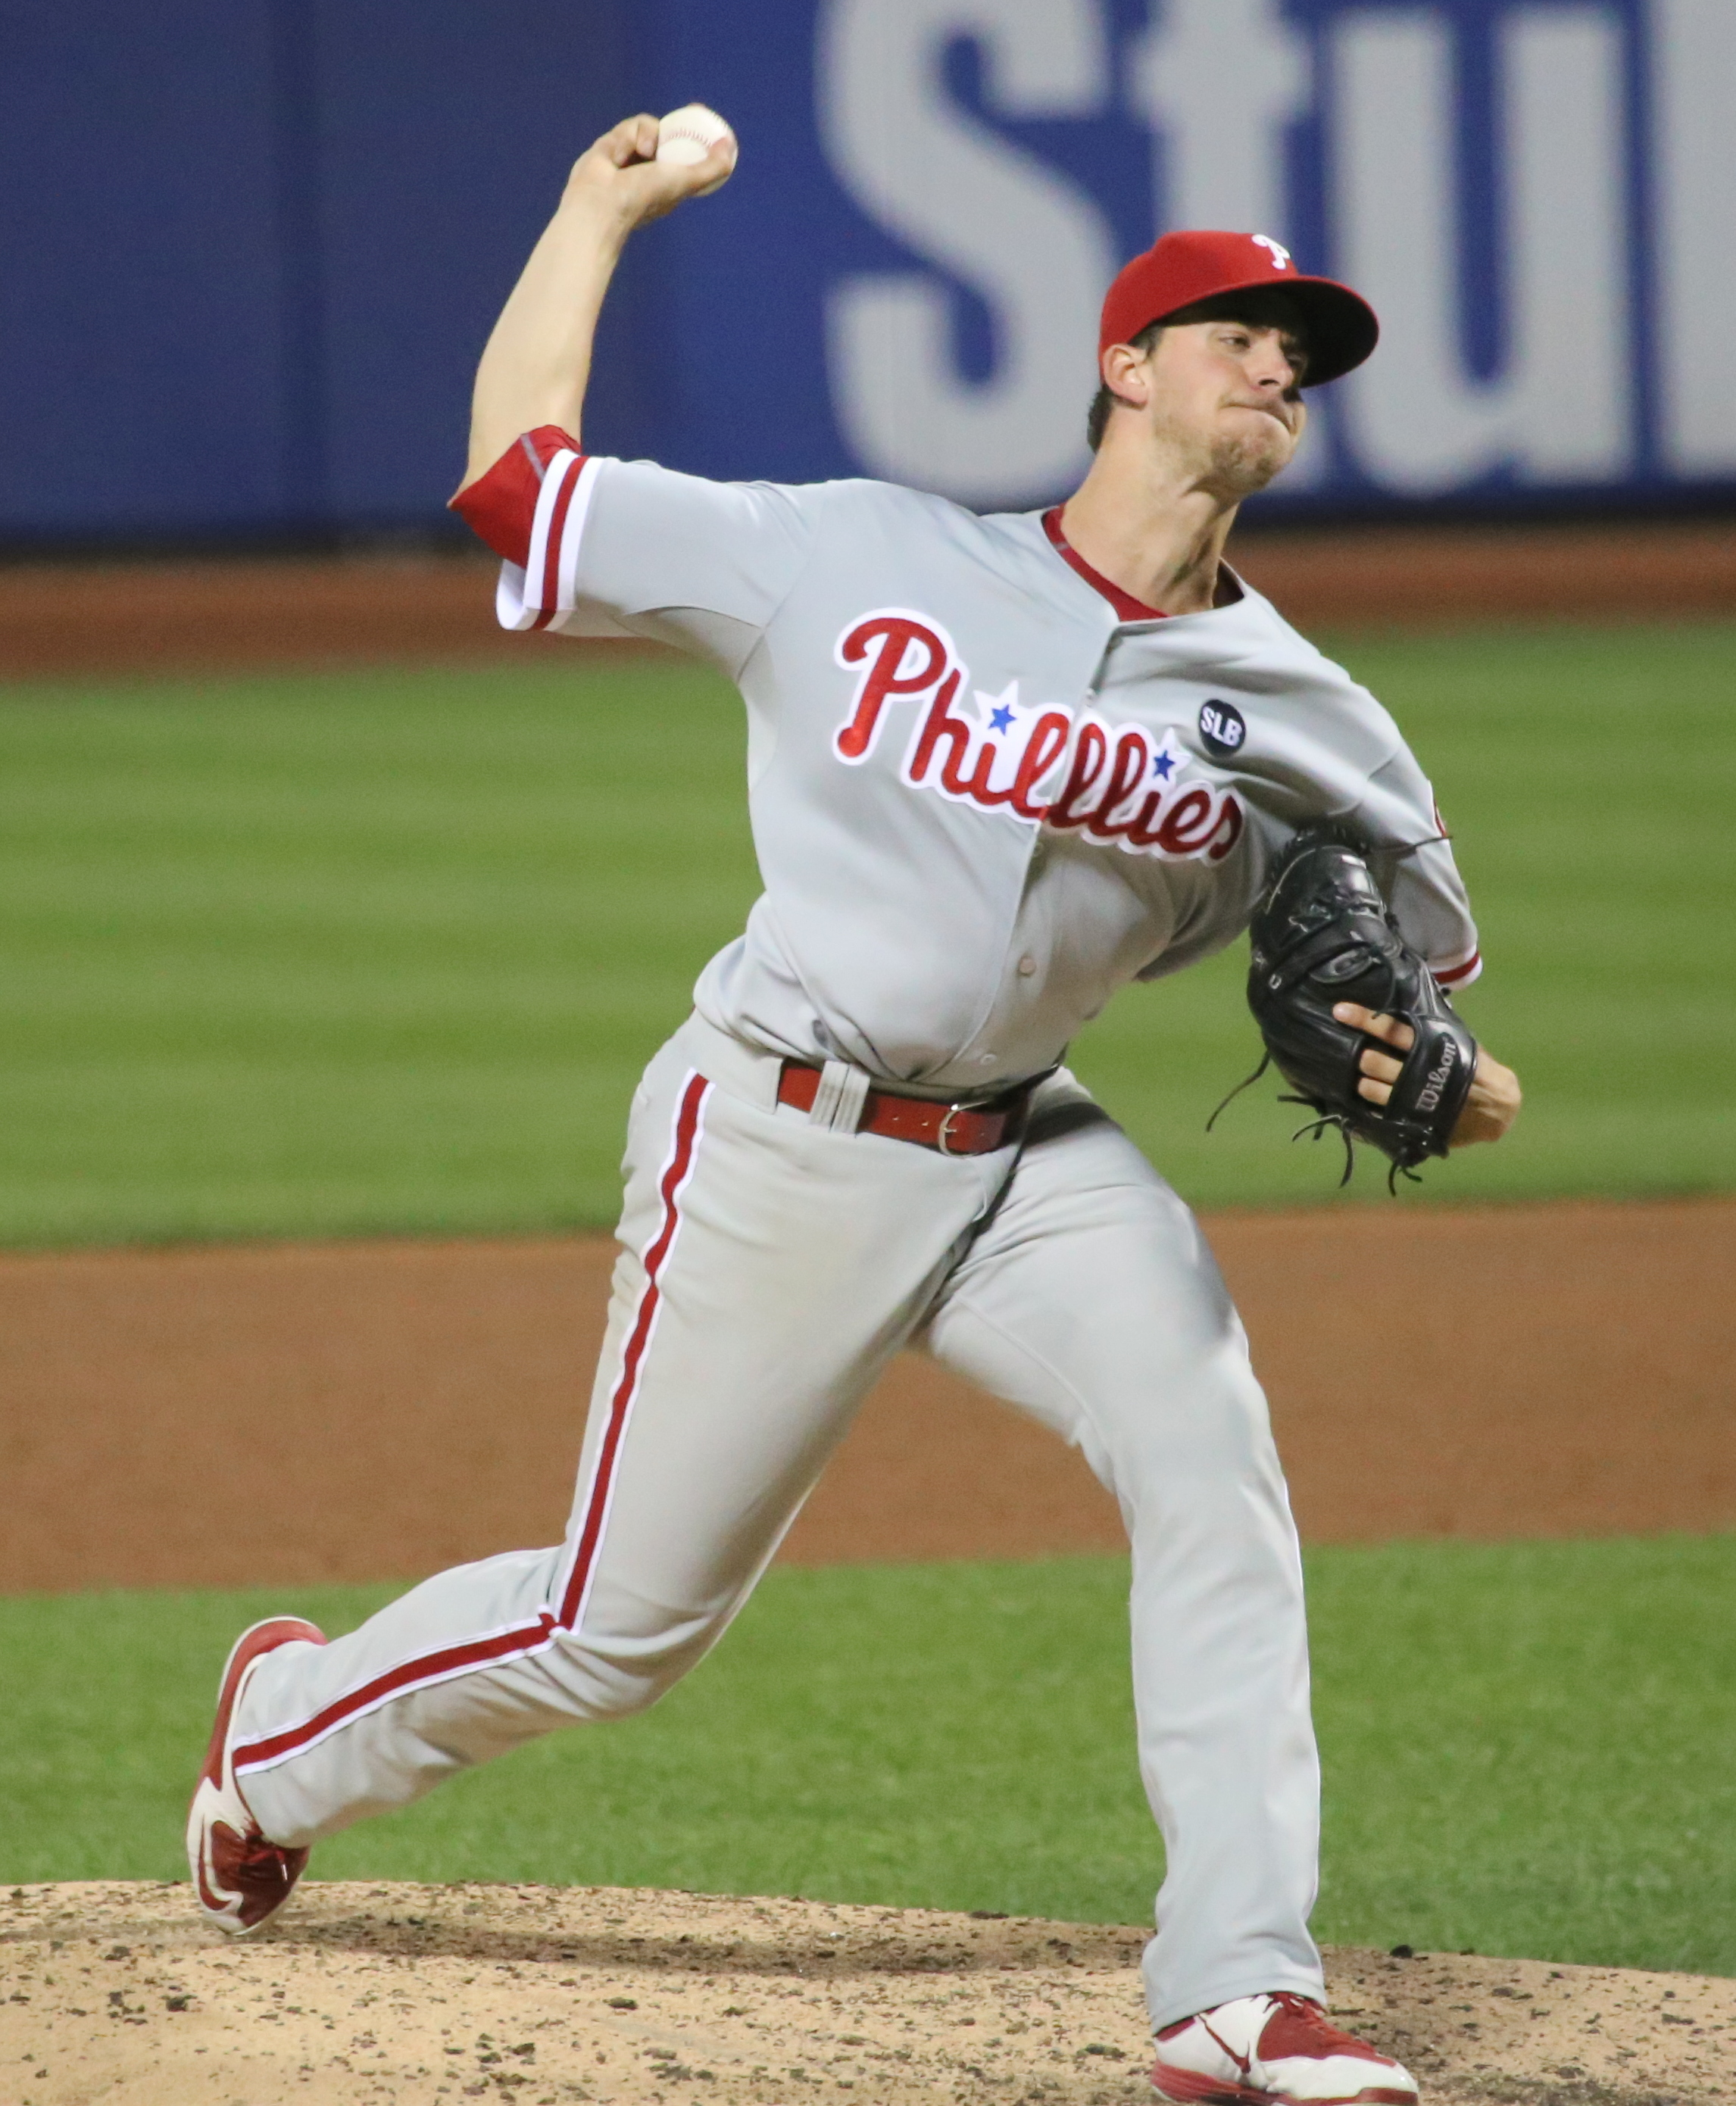 August 14, 2019 -- Led by the hitting of Scott Kingery, the Phillies defeated the Cubs at home, 11 to 1. The Phillies hitting was helped by the pitching of Aaron Nola.